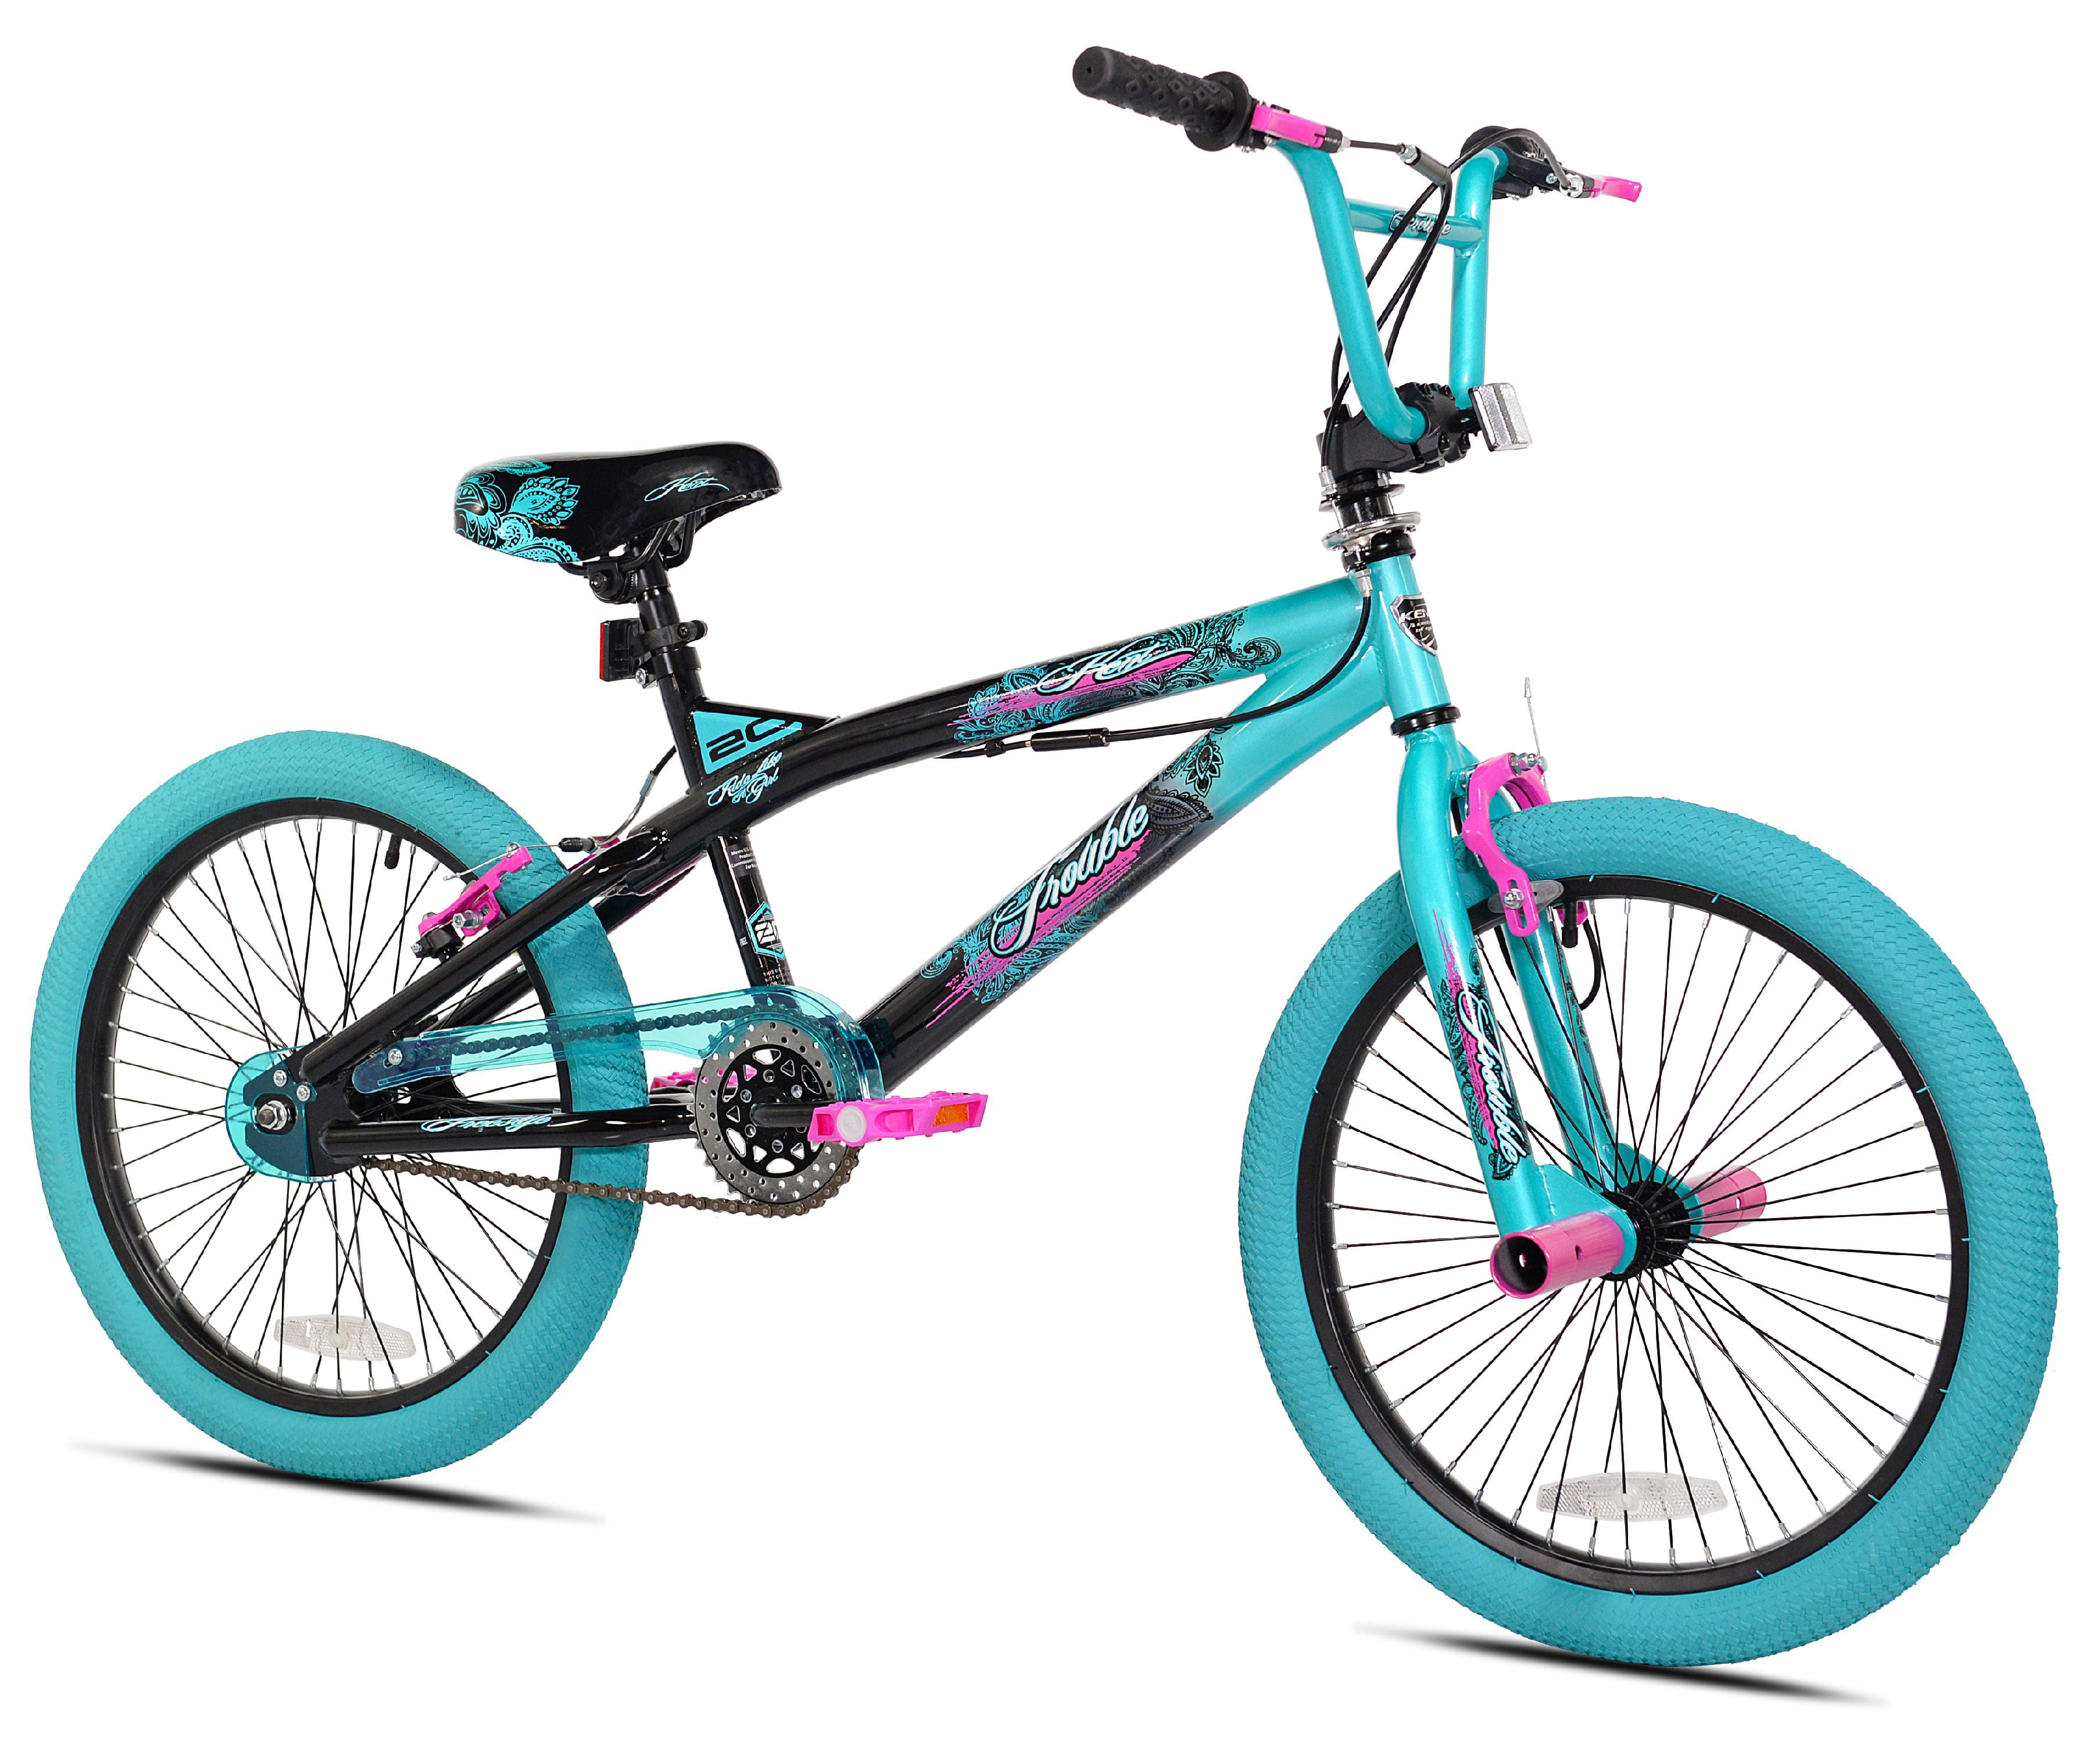 "Kent 20"" Girls', Trouble BMX Bike, Black Pink, For Height Sizes 4'2"" and Up by Kent International Inc"